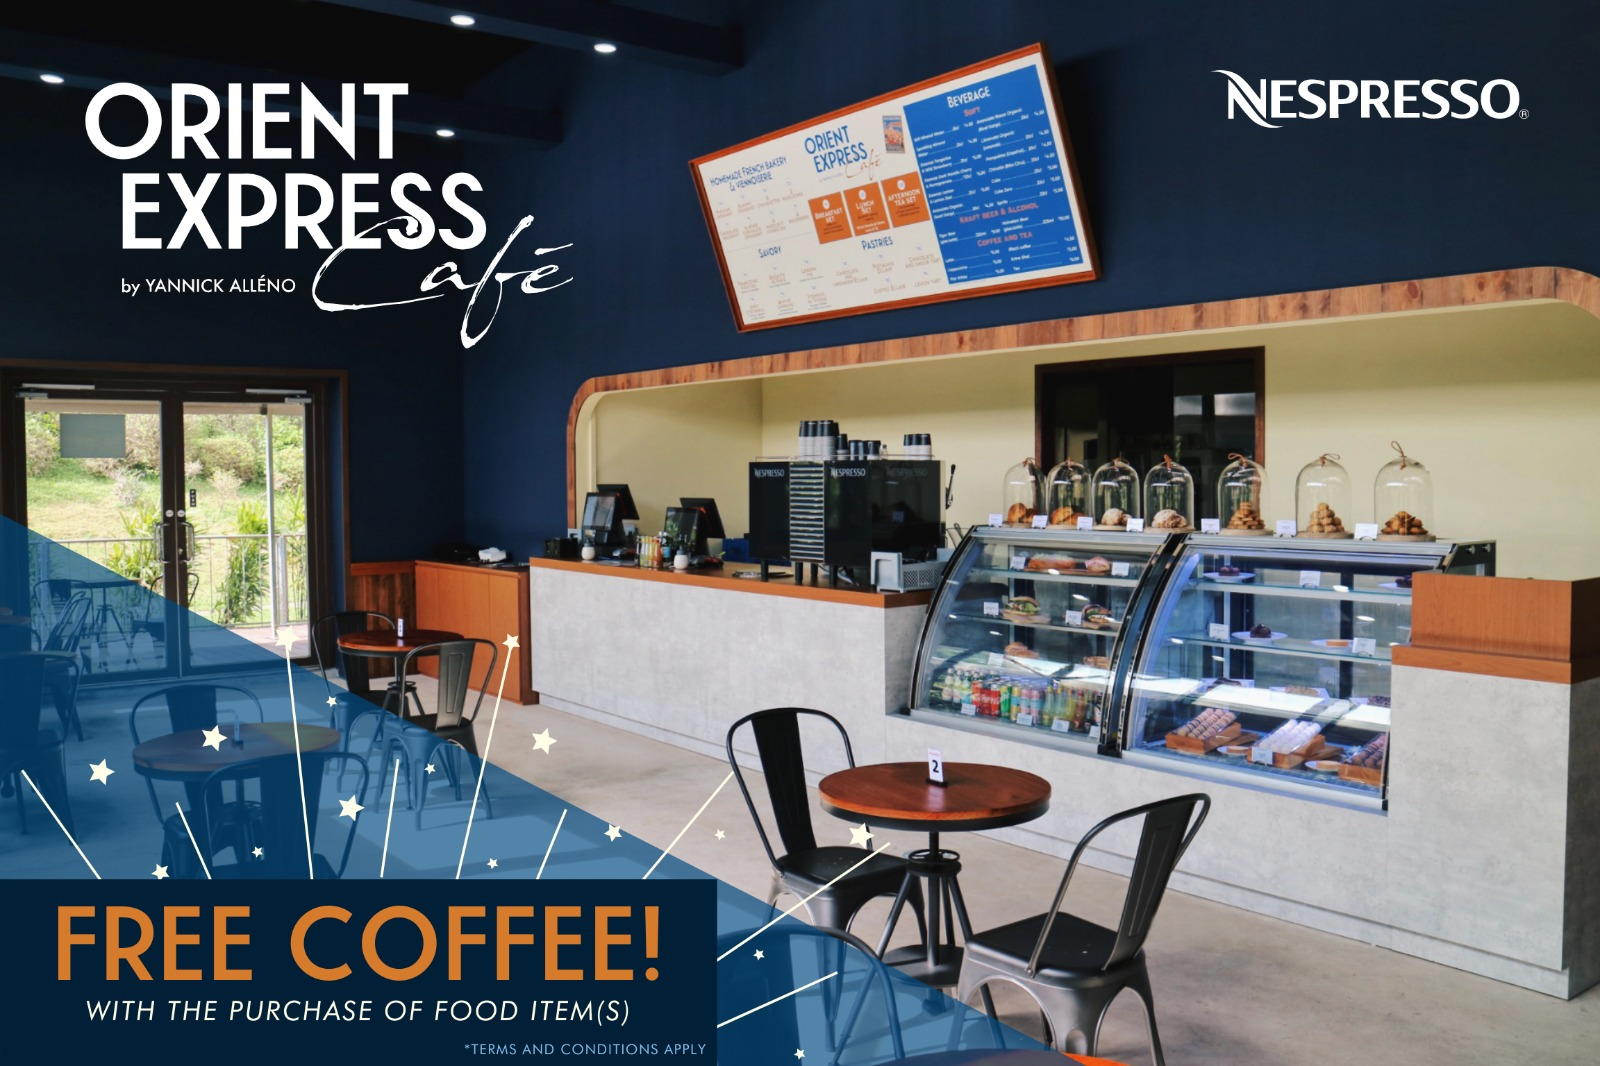 Free coffee with purchase at Orient Express Café by Yannick Alléno